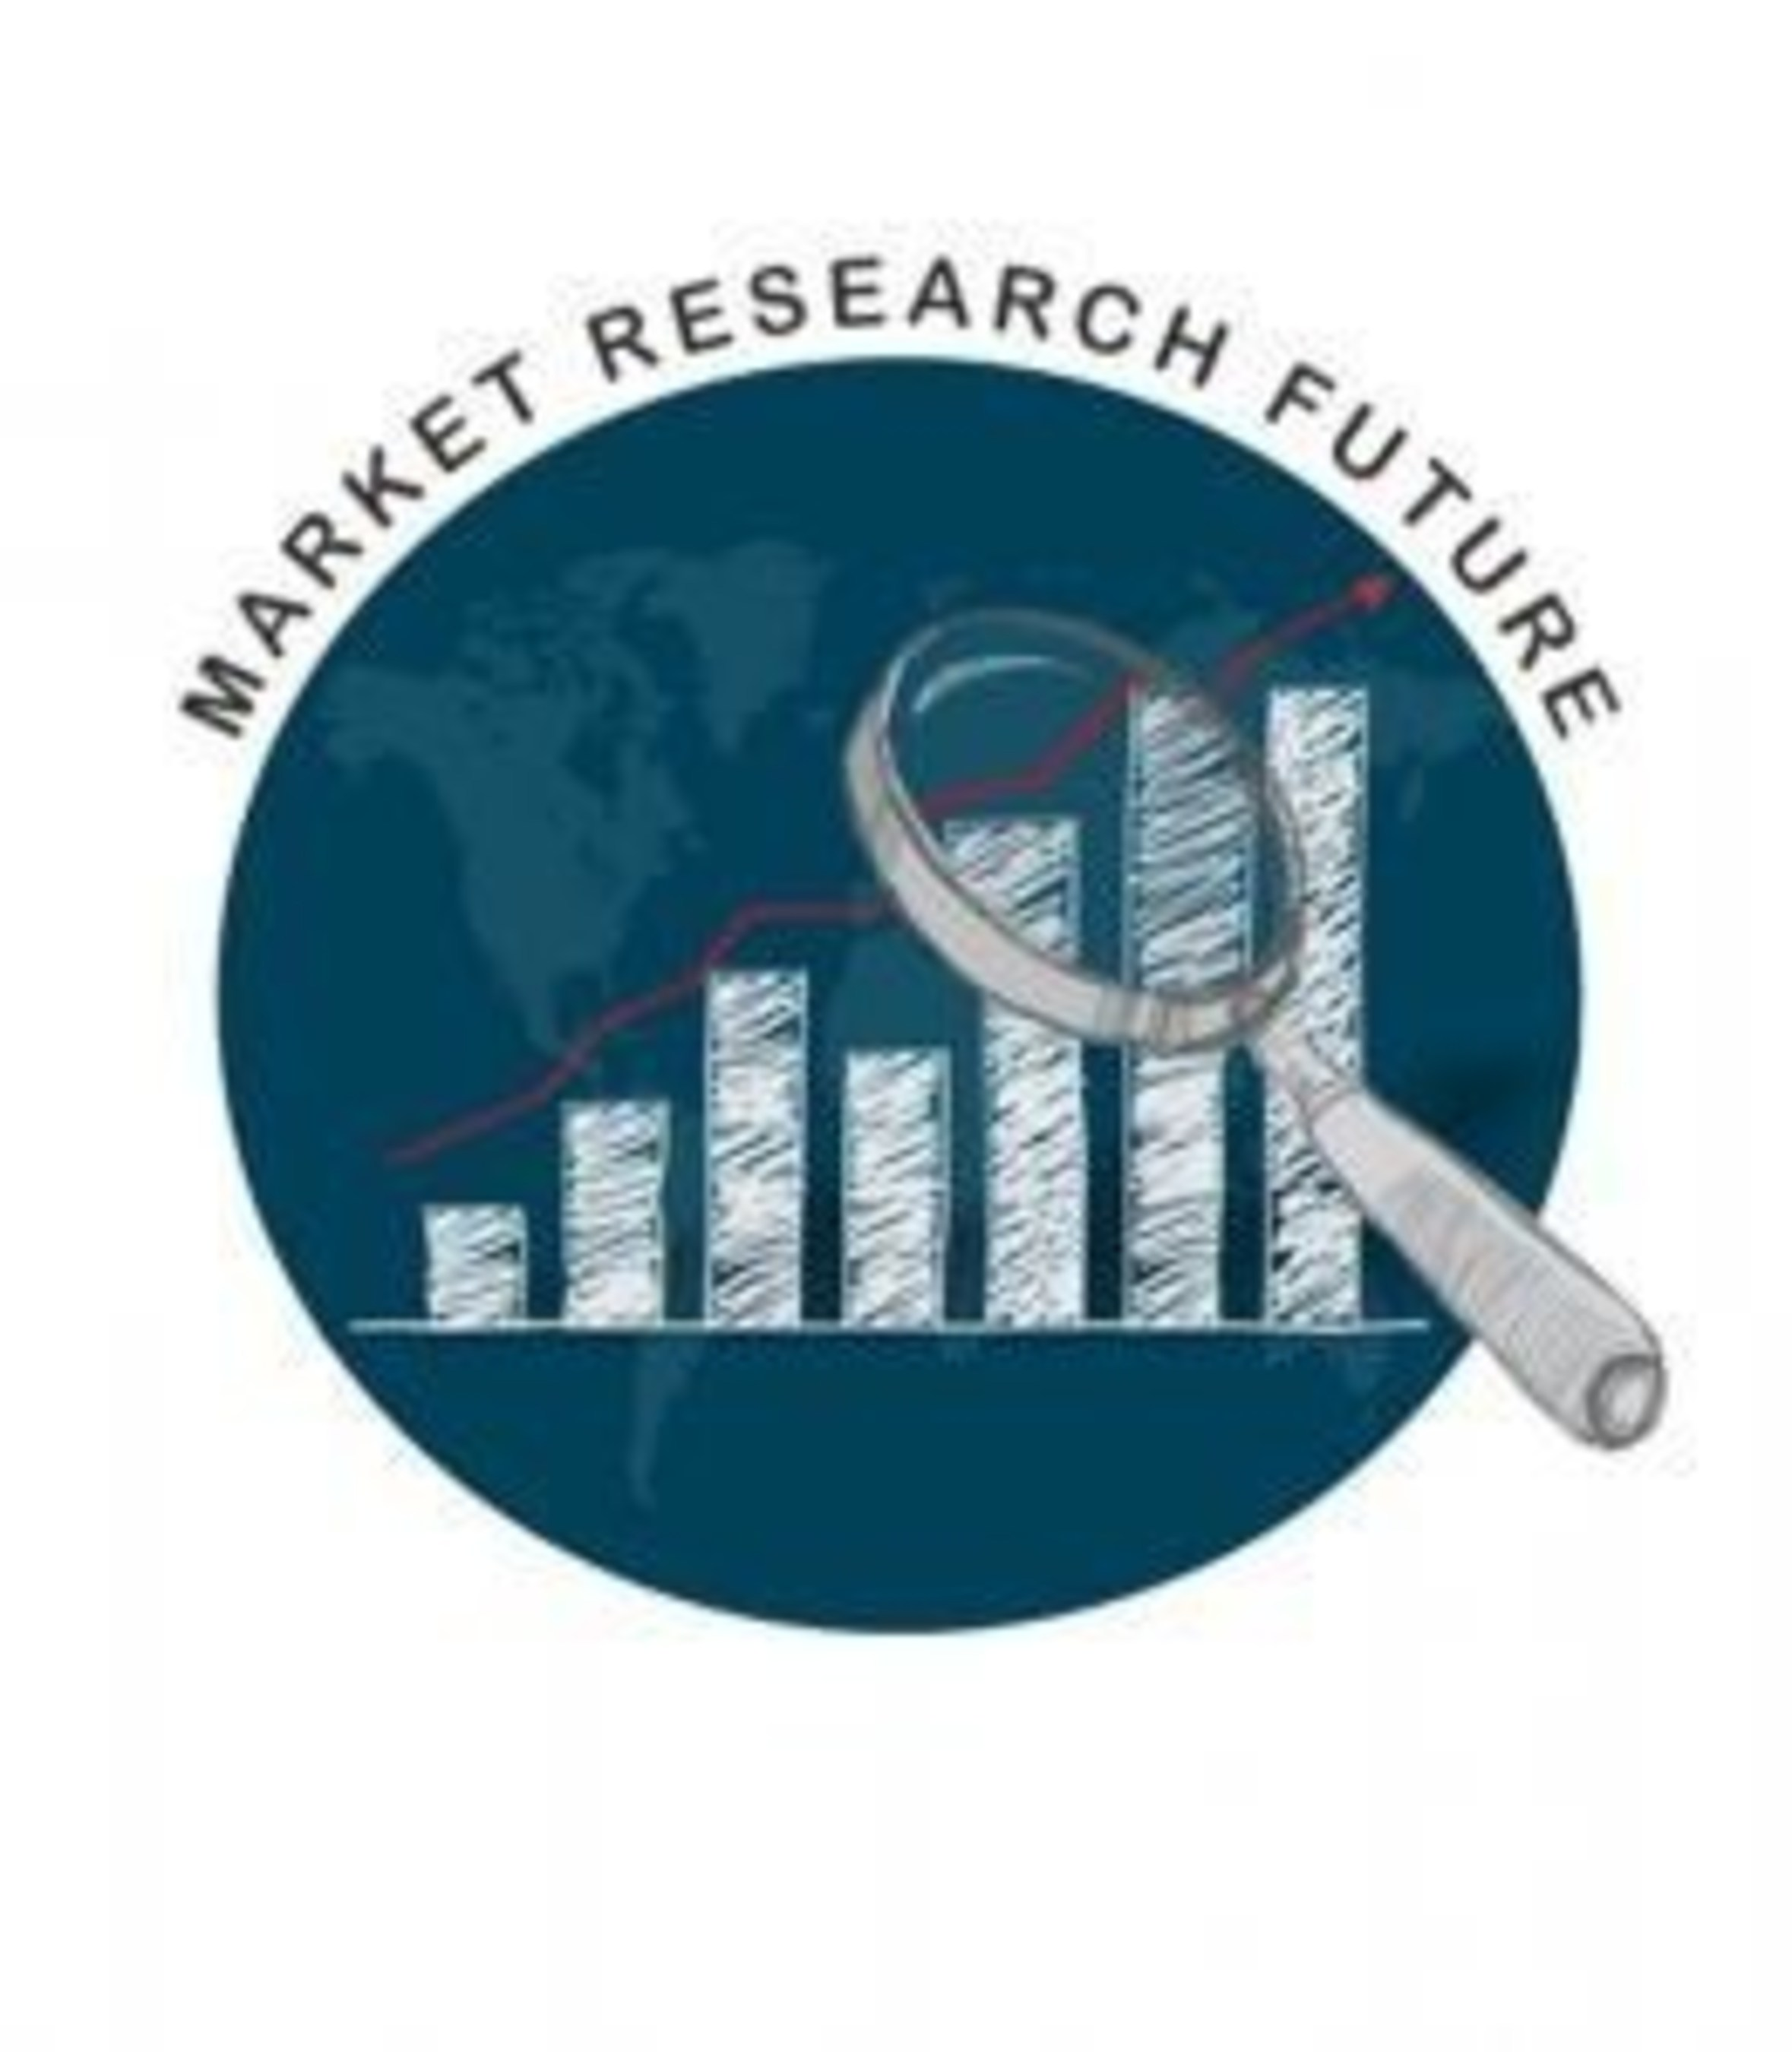 Global Corporate E-learning Market Scenario, Technology, Major Key Players, Segments, Industry Insights and Outlook to 2022